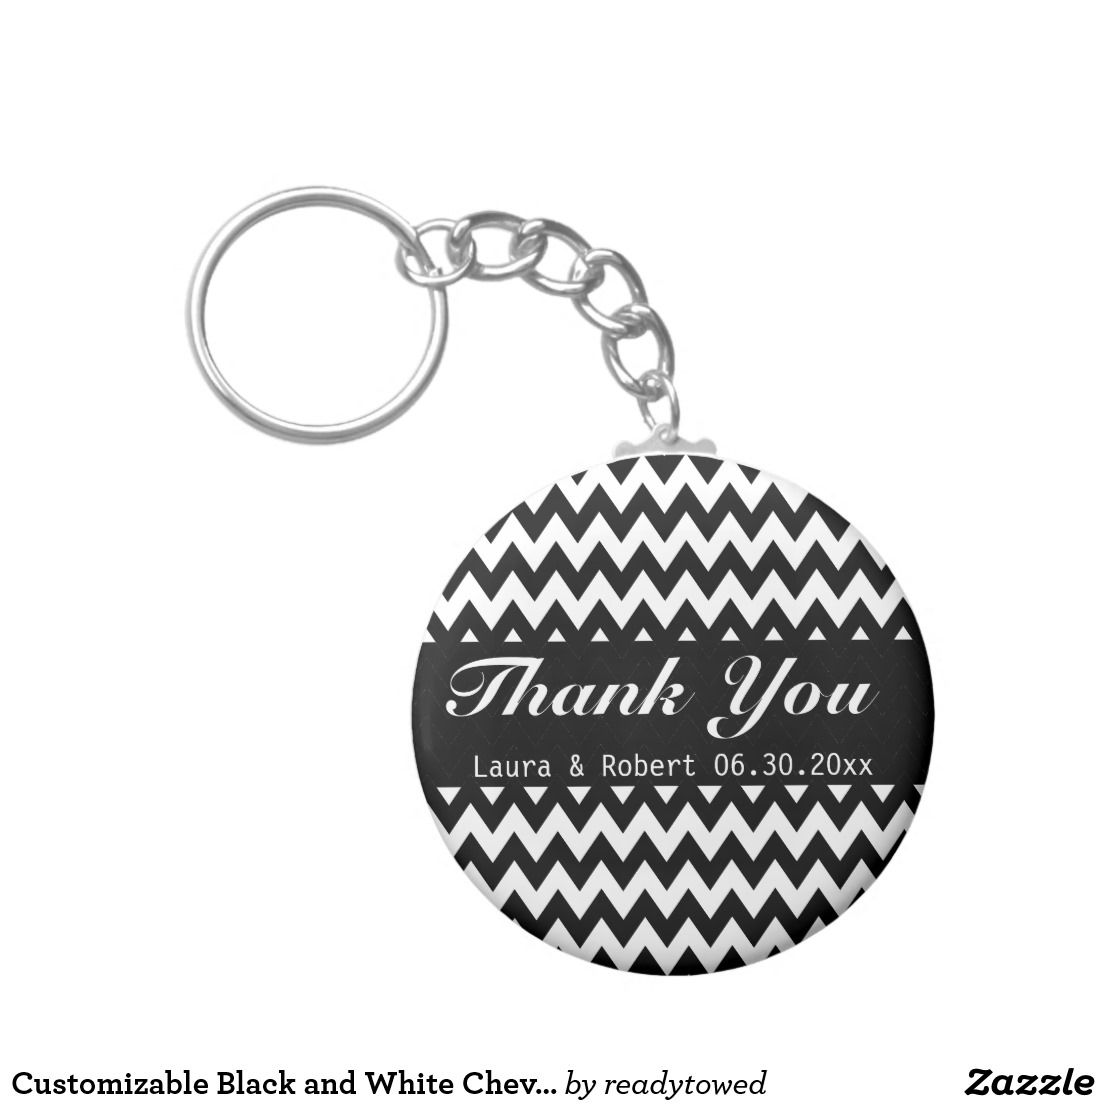 Customizable Black and White Chevron Wedding Favor Keychain | Black ...